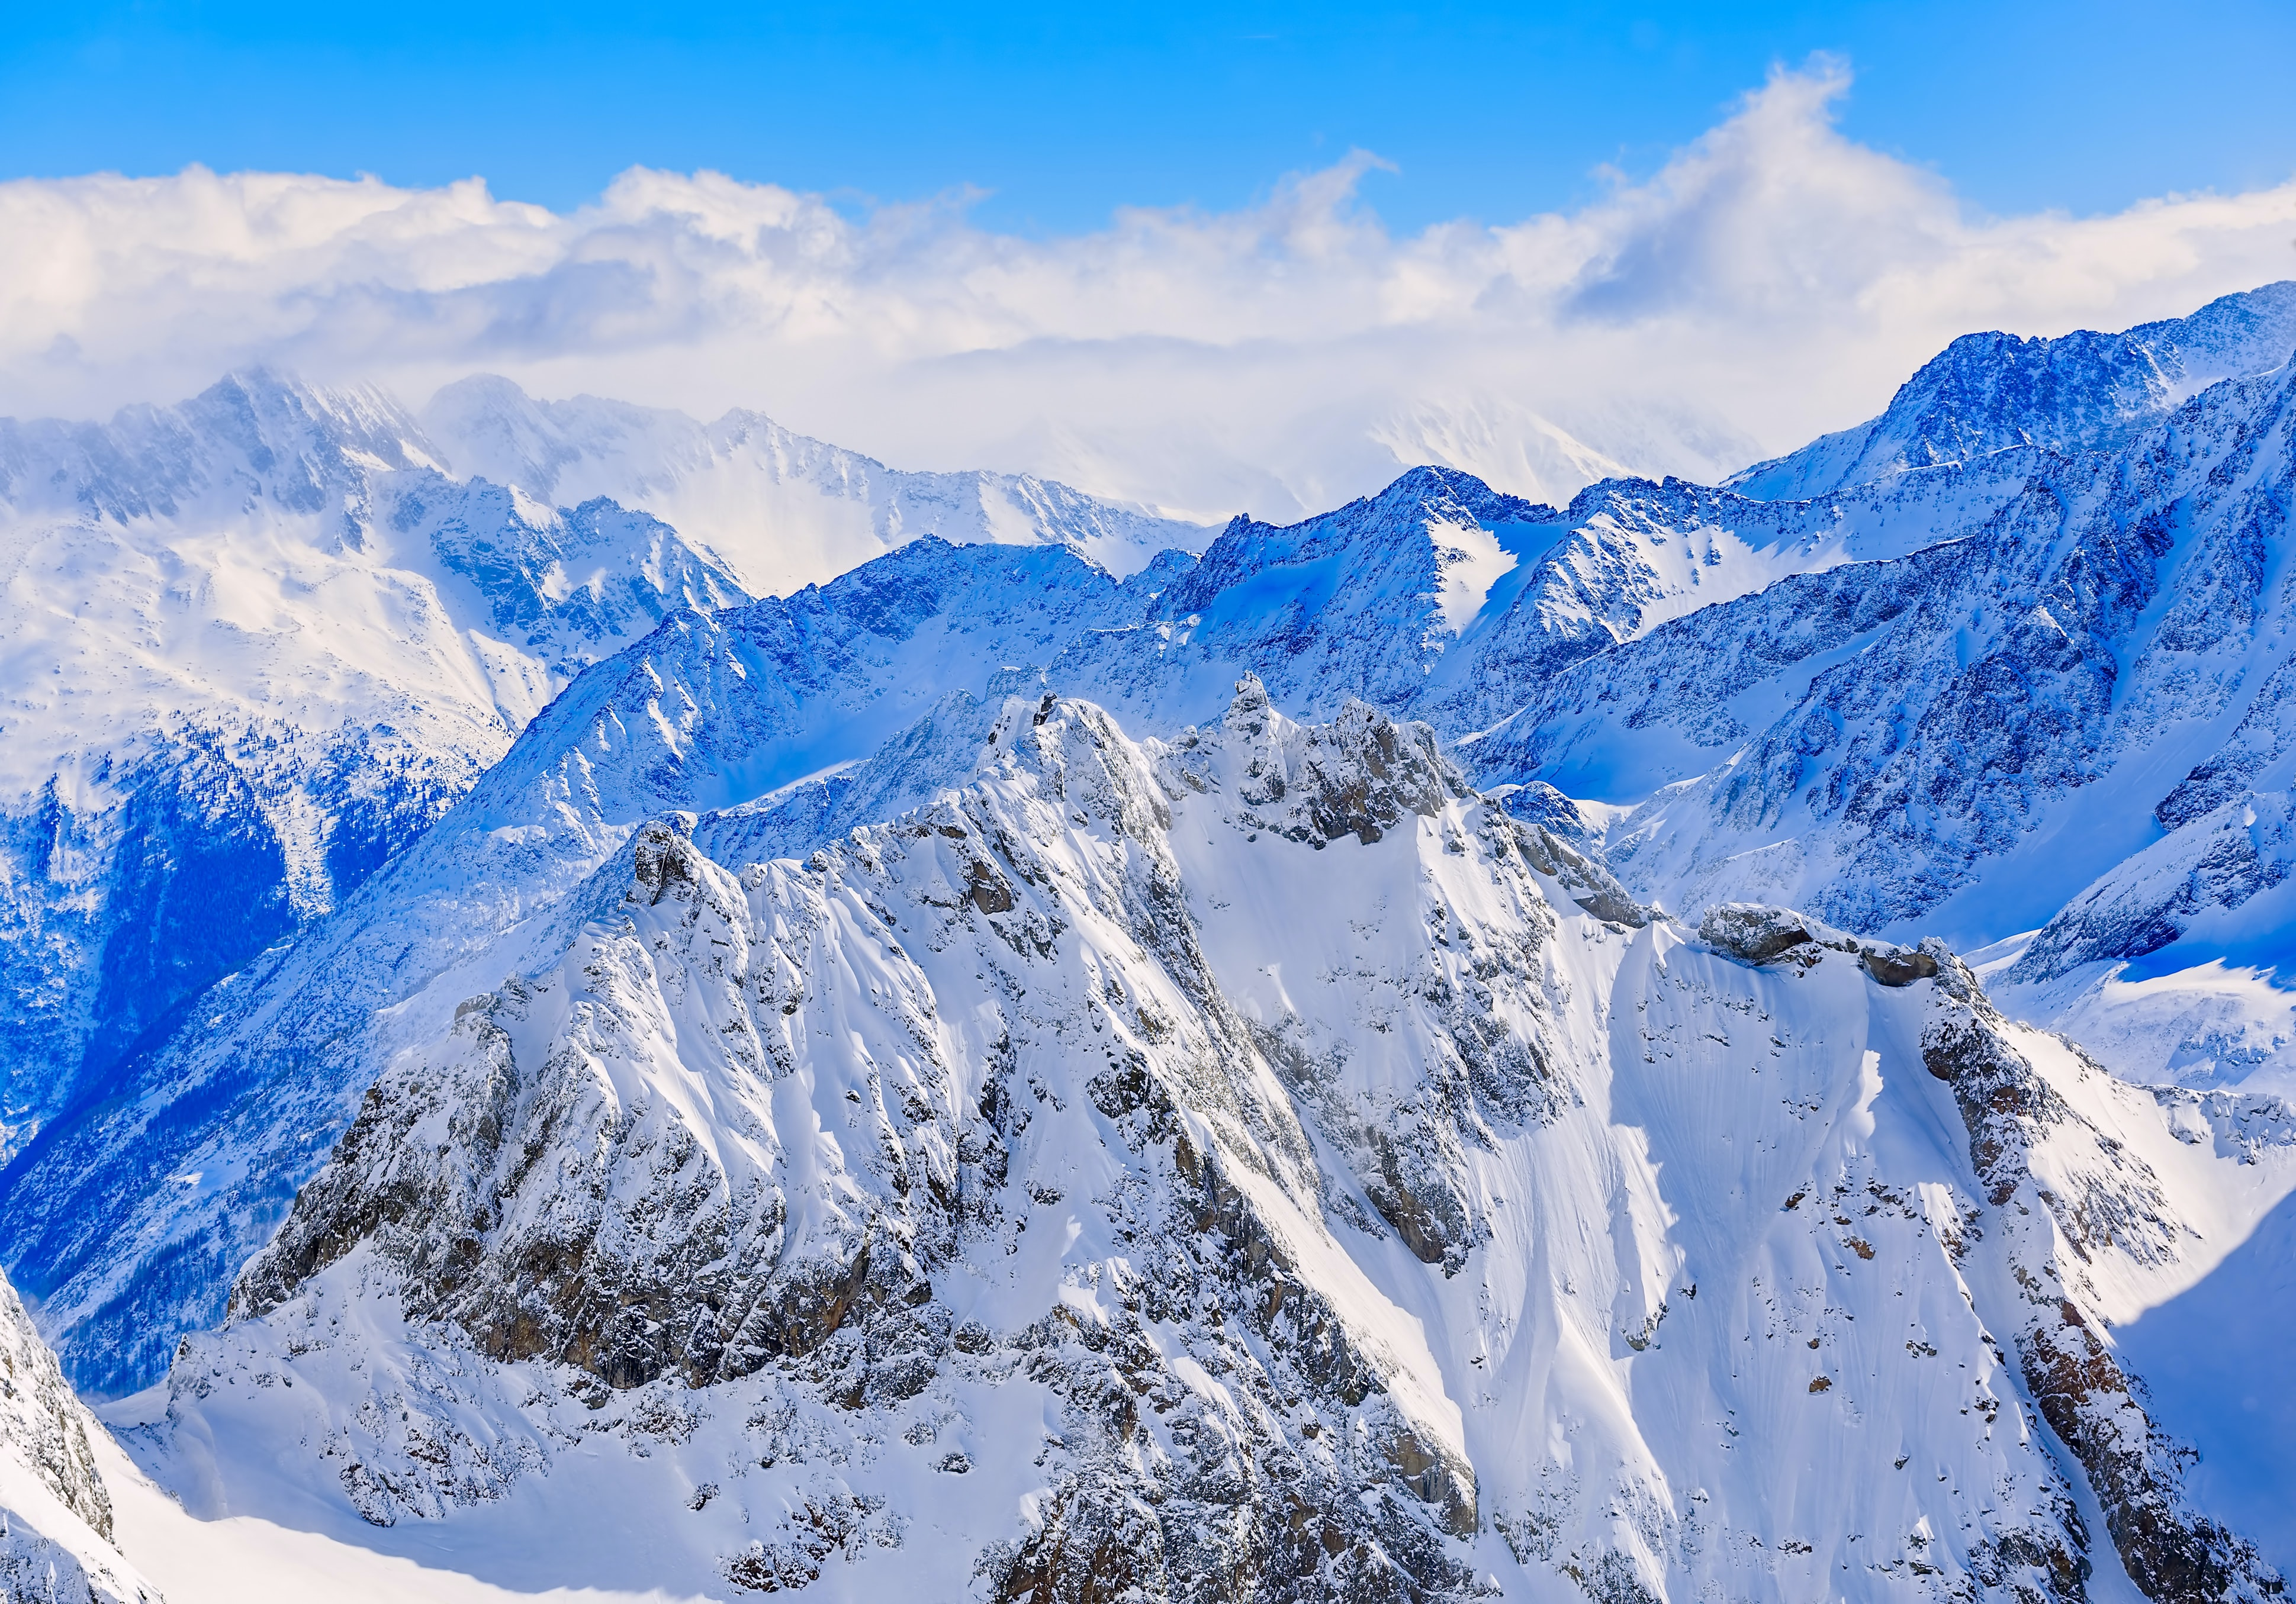 aerial view of mountain coated snow